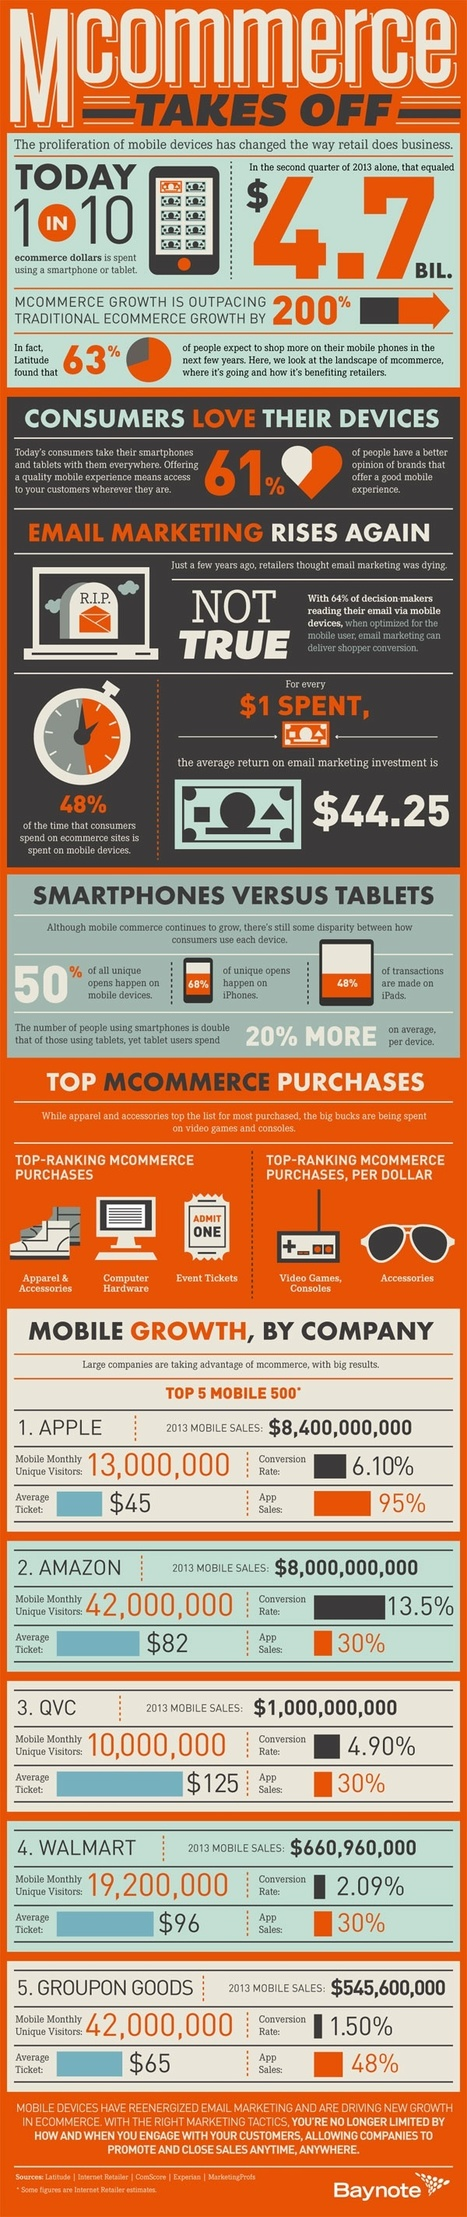 10+ Must-See Mobile Commerce Stats [Infographic] | MarketingHits | Scoop.it